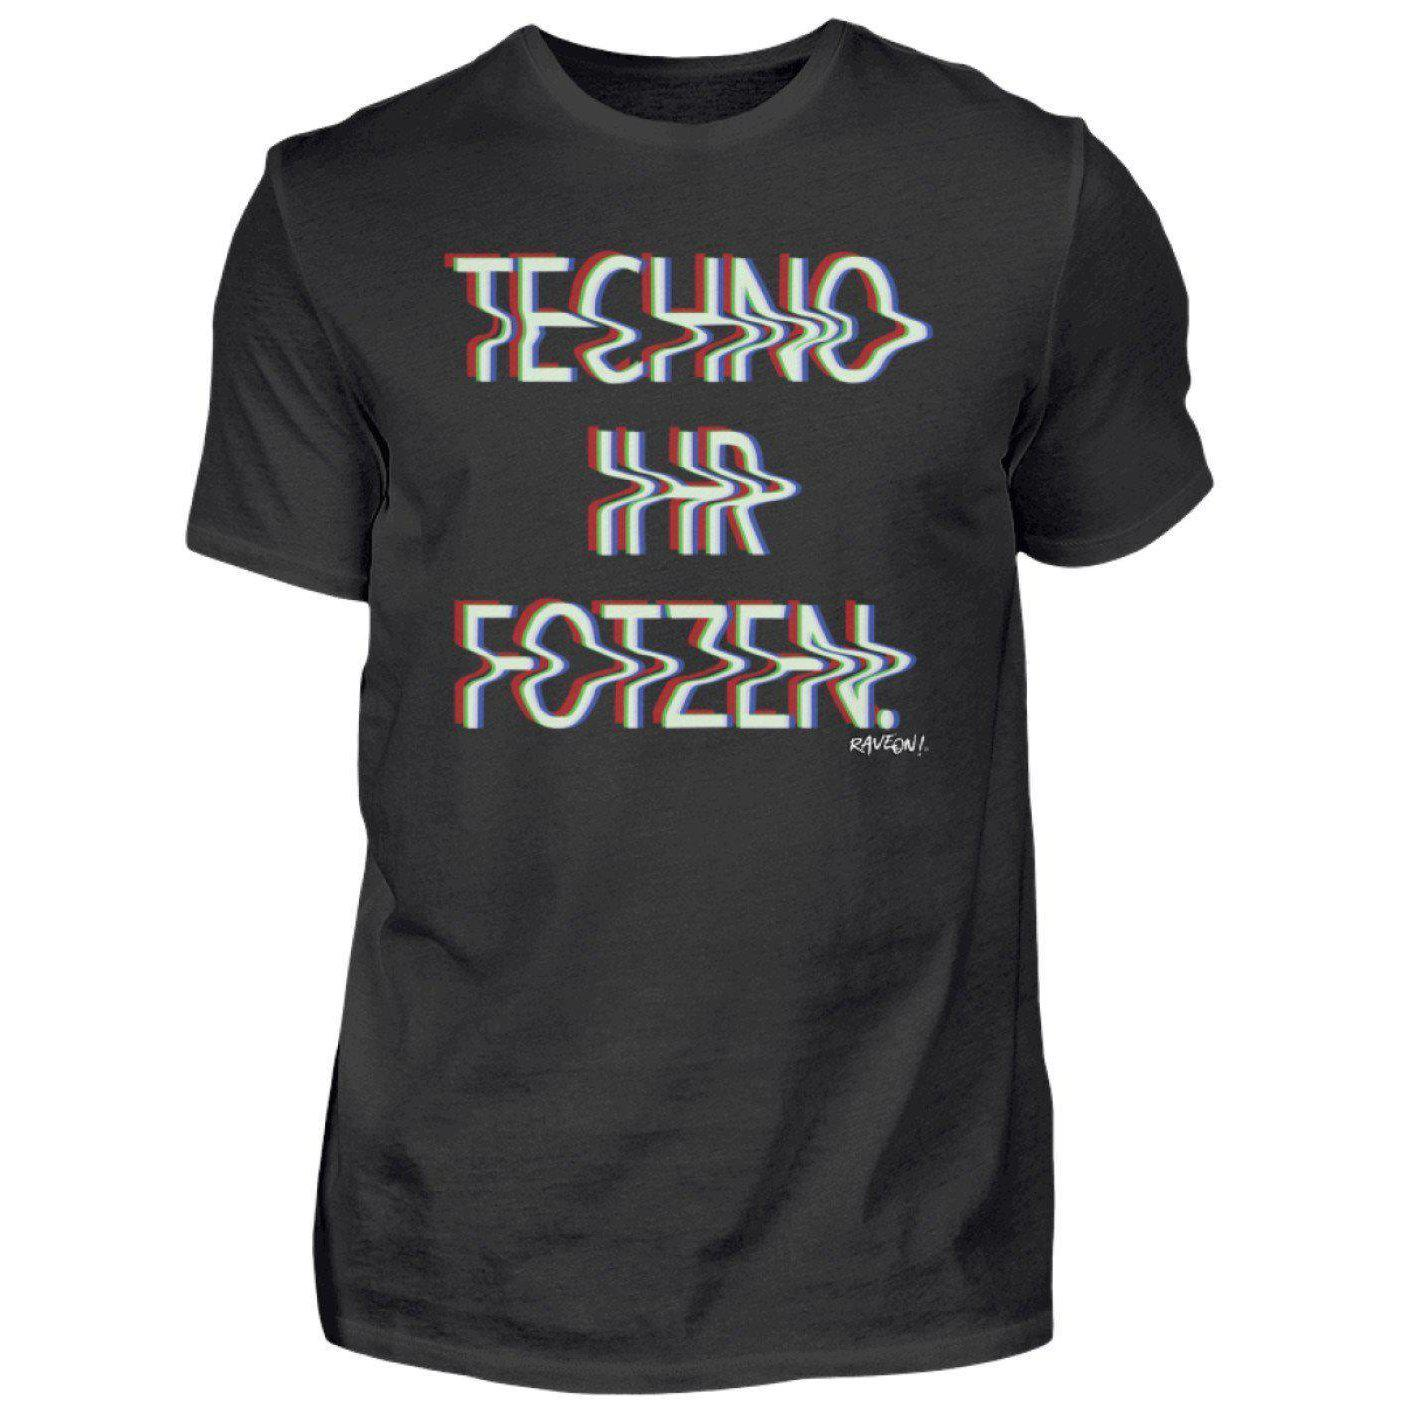 Techno Ihr F*tzen - Rave On!® - Herren Shirt-Herren Basic T-Shirt-Schwarz-S-Rave-On! I www.rave-on.shop I Deine Rave & Techno Szene Shop I apparel, Design - Techno Ihr F - Rave On!®, fotze, fotzen, Global recommendation, i heart raves, On!®, rave, rave apparel, rave clothes, rave clothing, rave fashion, rave gear, rave on, Rave On!®, rave shop, rave wear, raver, techno apparel, ® - Sexy Festival Streetwear , Clubwear & Raver Style